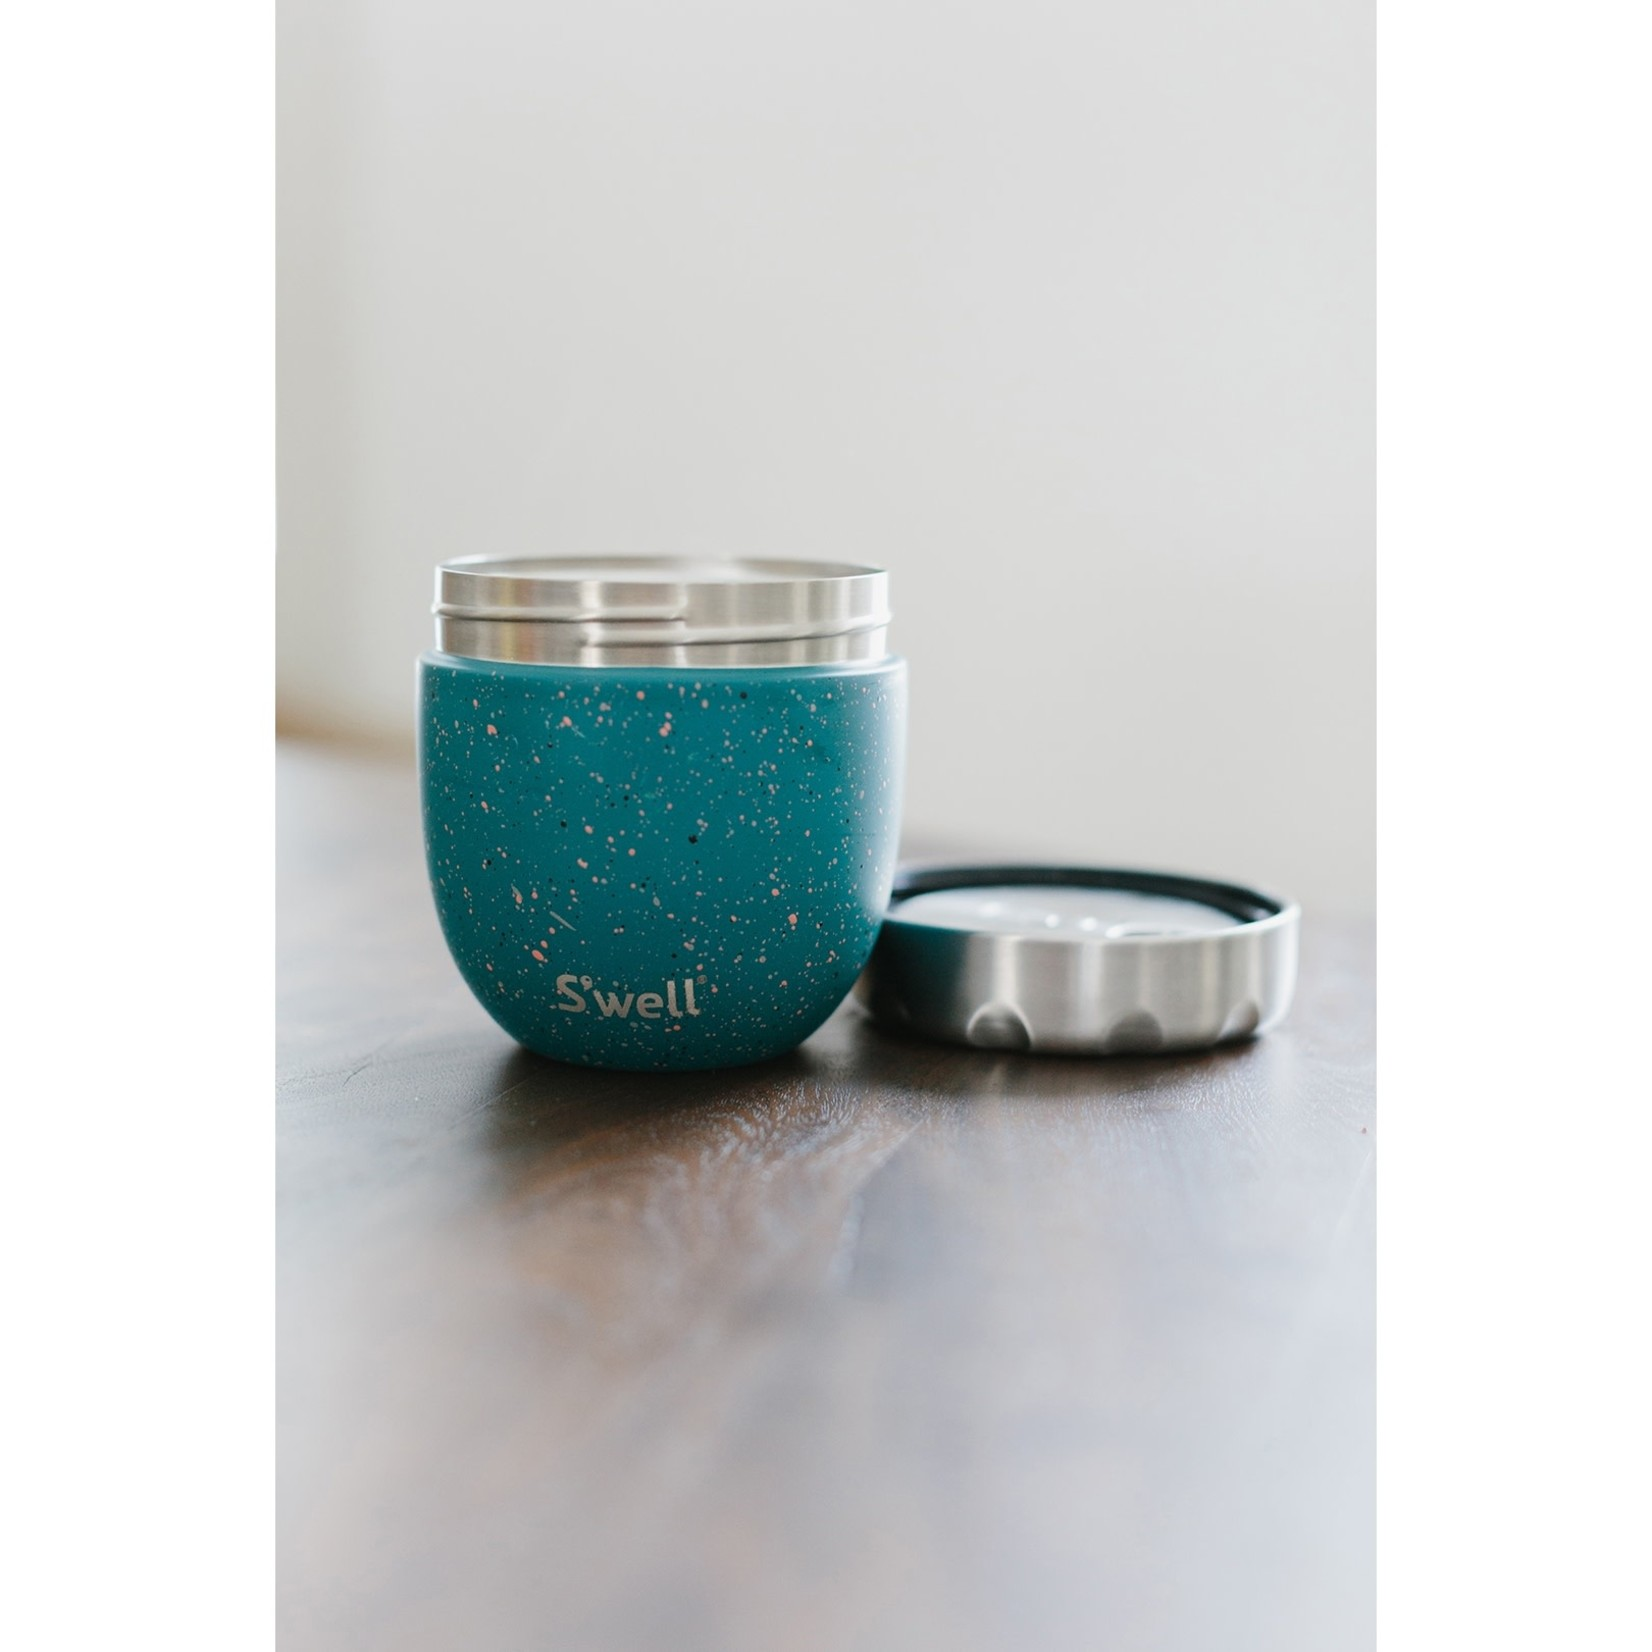 S'well S'well Bottle Eats Food Container-SPECKLED EARTH-16oz